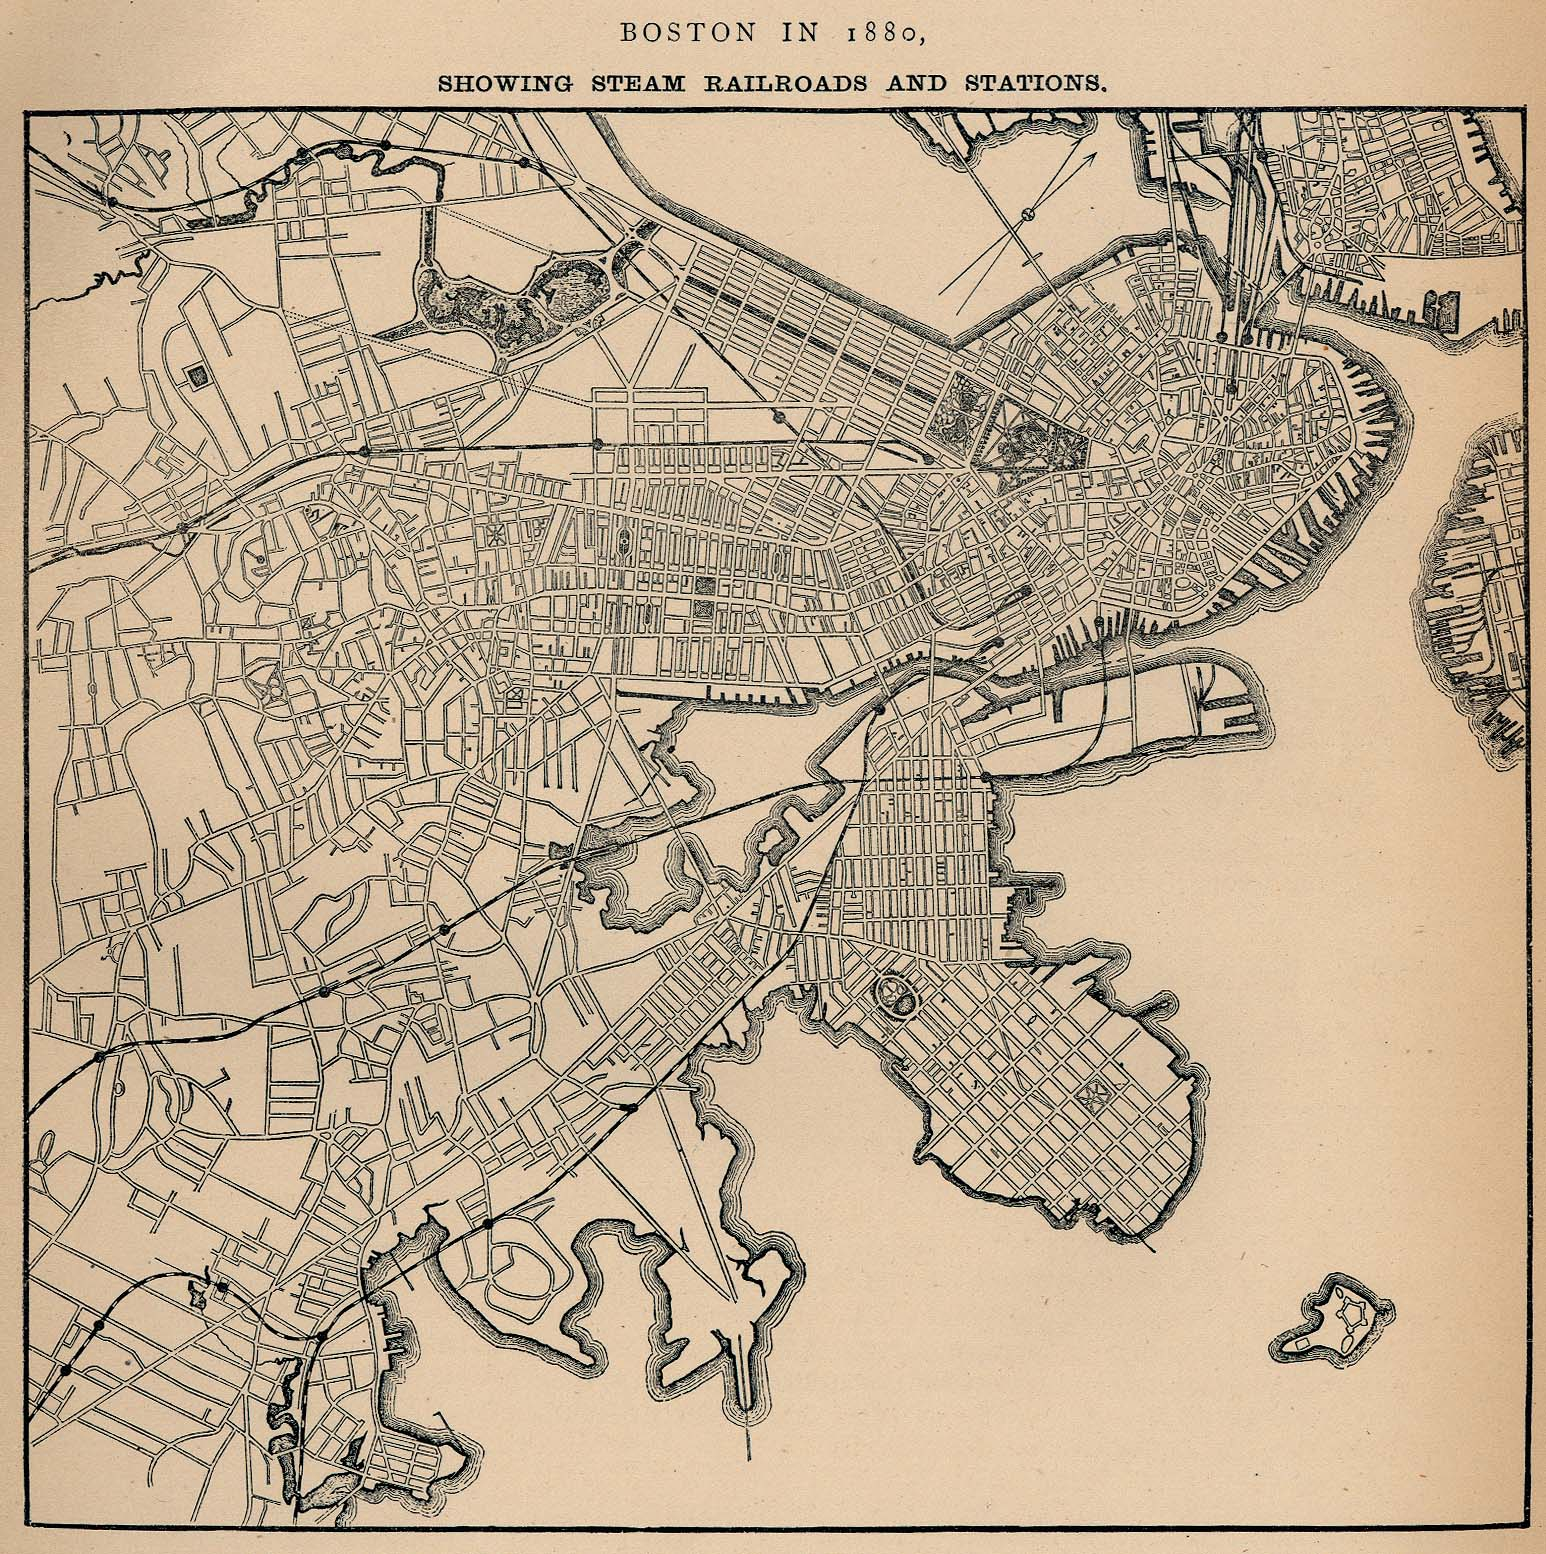 boston maps atlases and city (streets) directories » bu  - (k) boston massachusetts  – steam railroads and stations ""